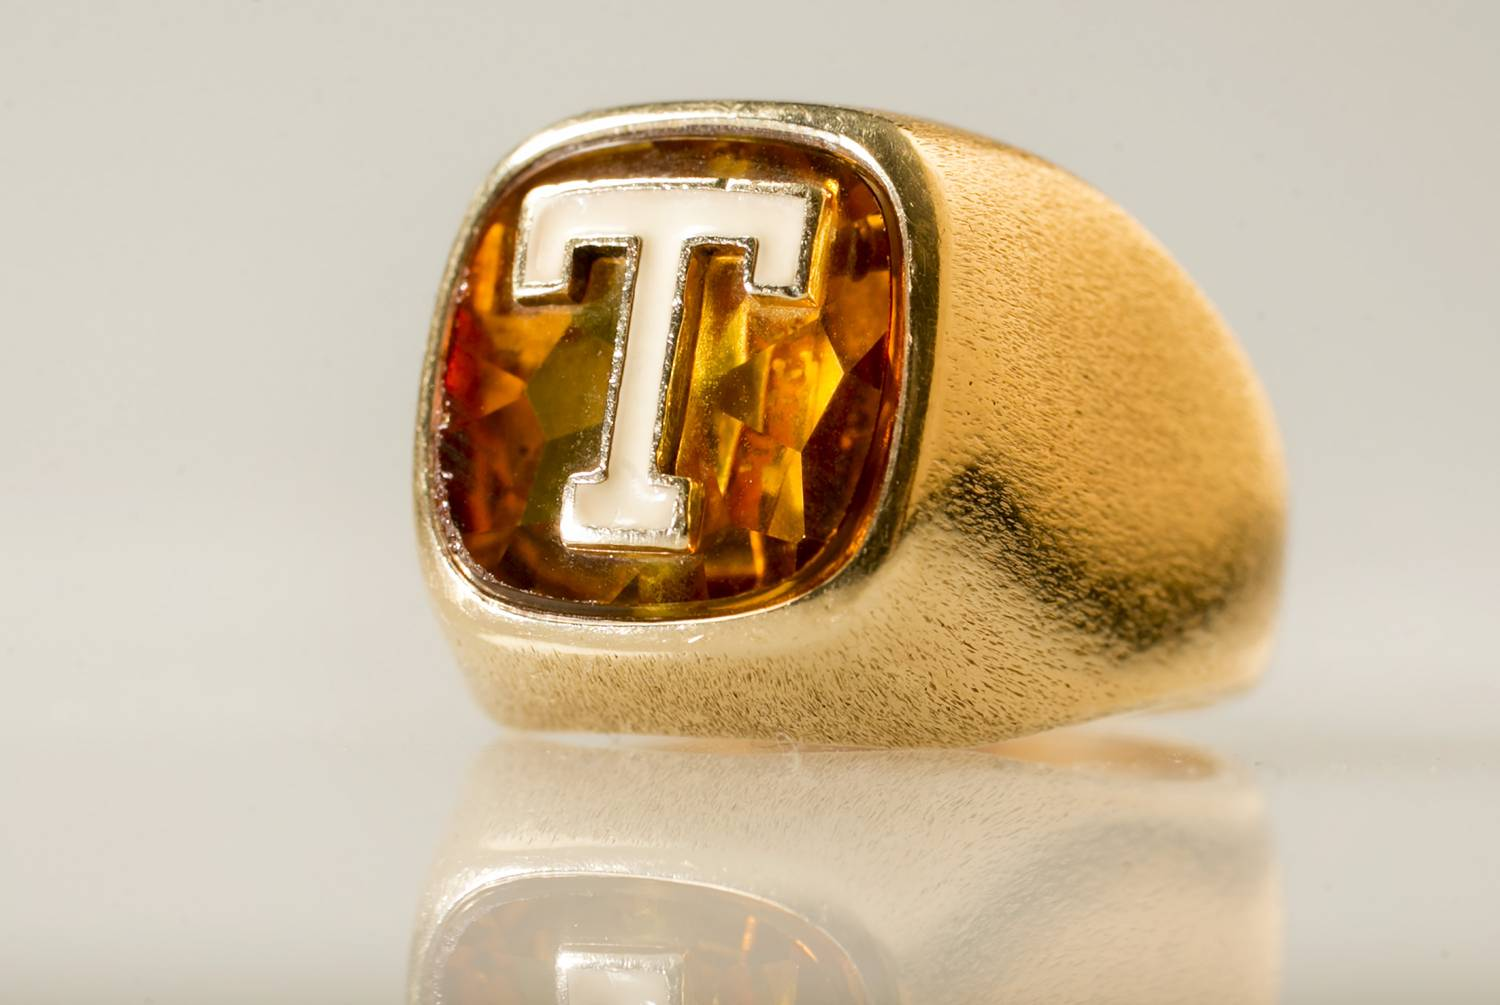 ring trade sports international crimson collections rings anne with championship wooden alabama college tide boxes ncaa